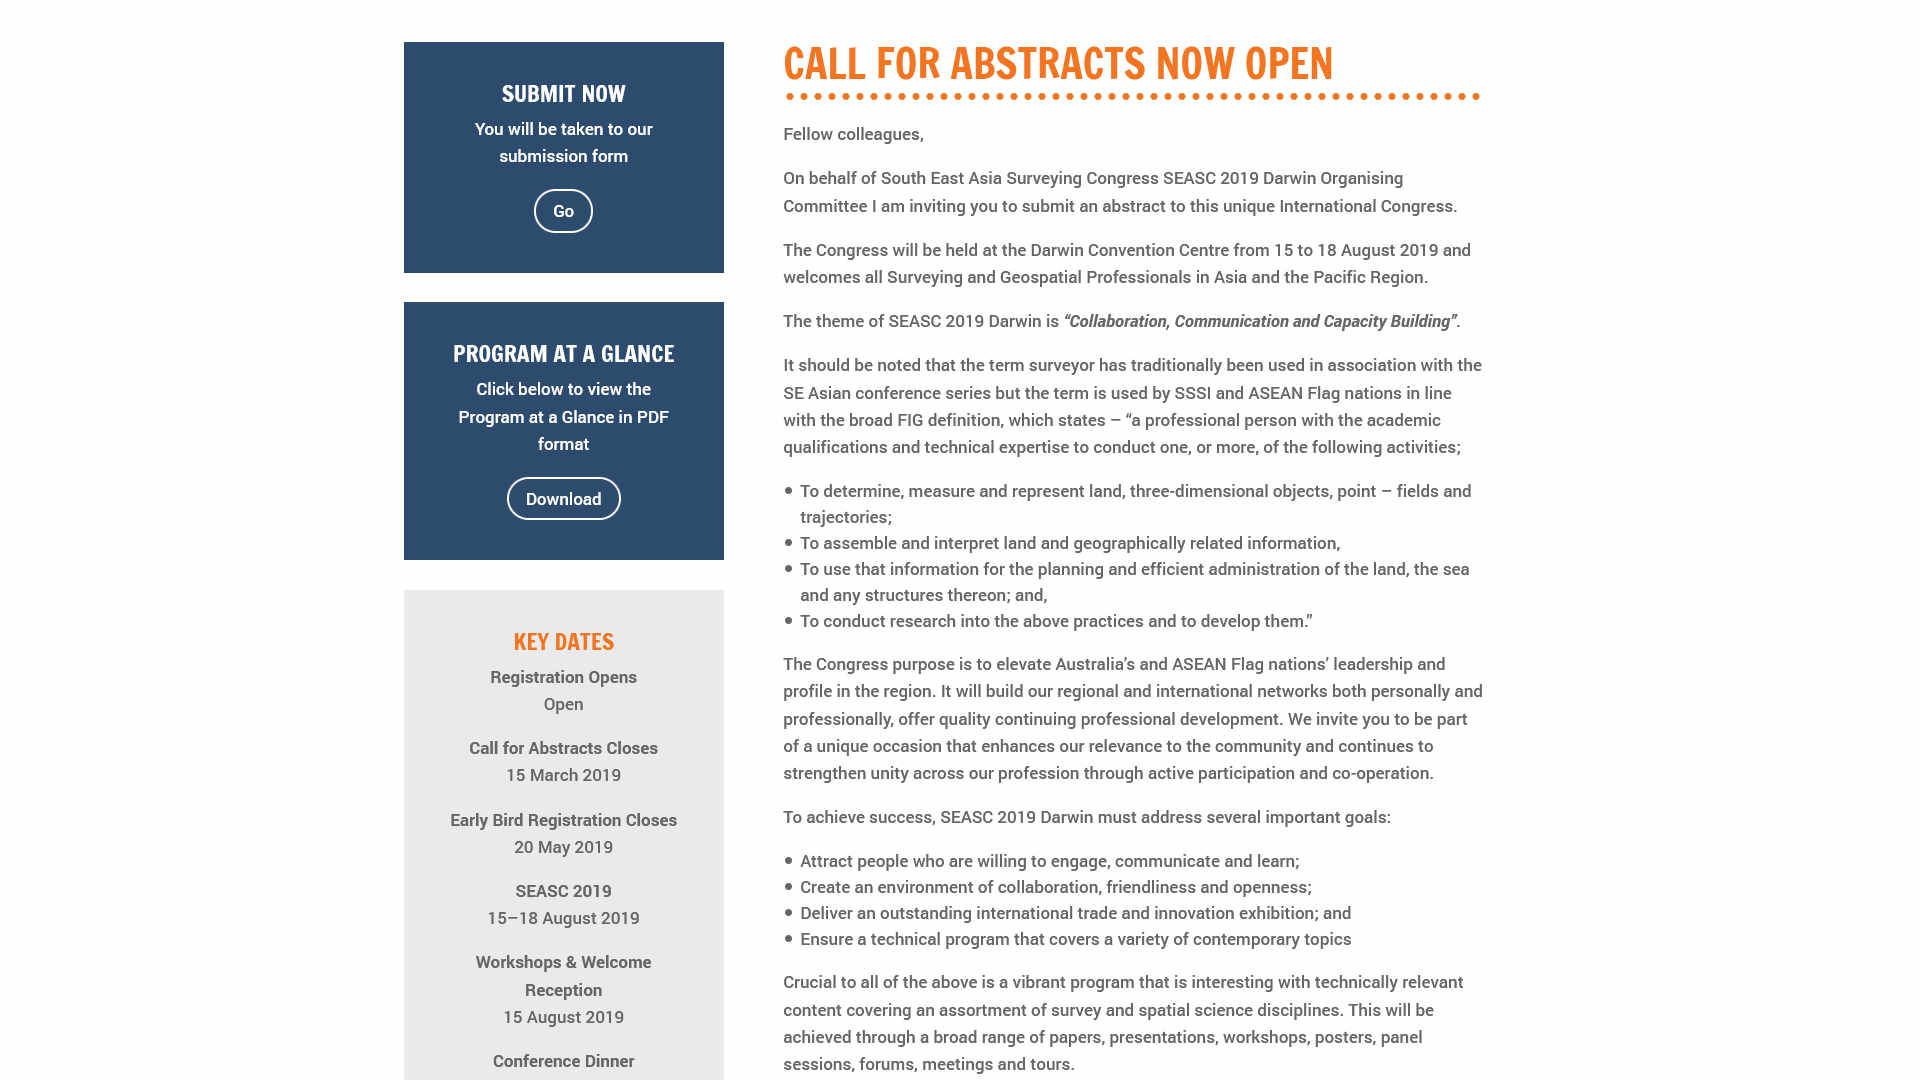 SEASC 2019 abstracts page